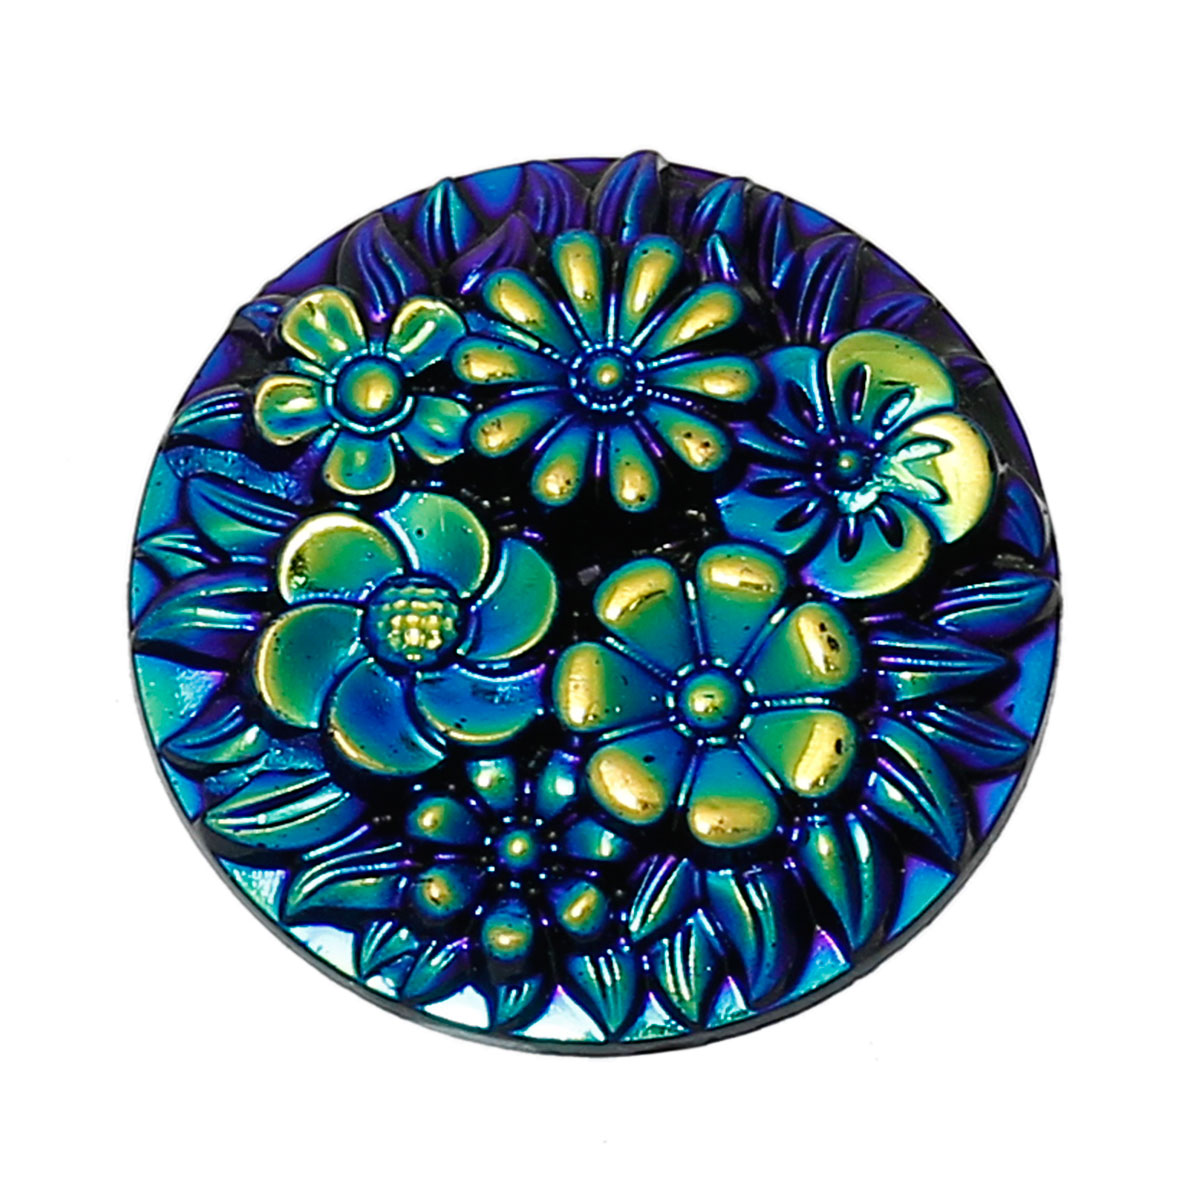 Resin Embellishments Findings Round Blue AB Color Flower Pattern 20mm(6/8)Dia,30 PCs new